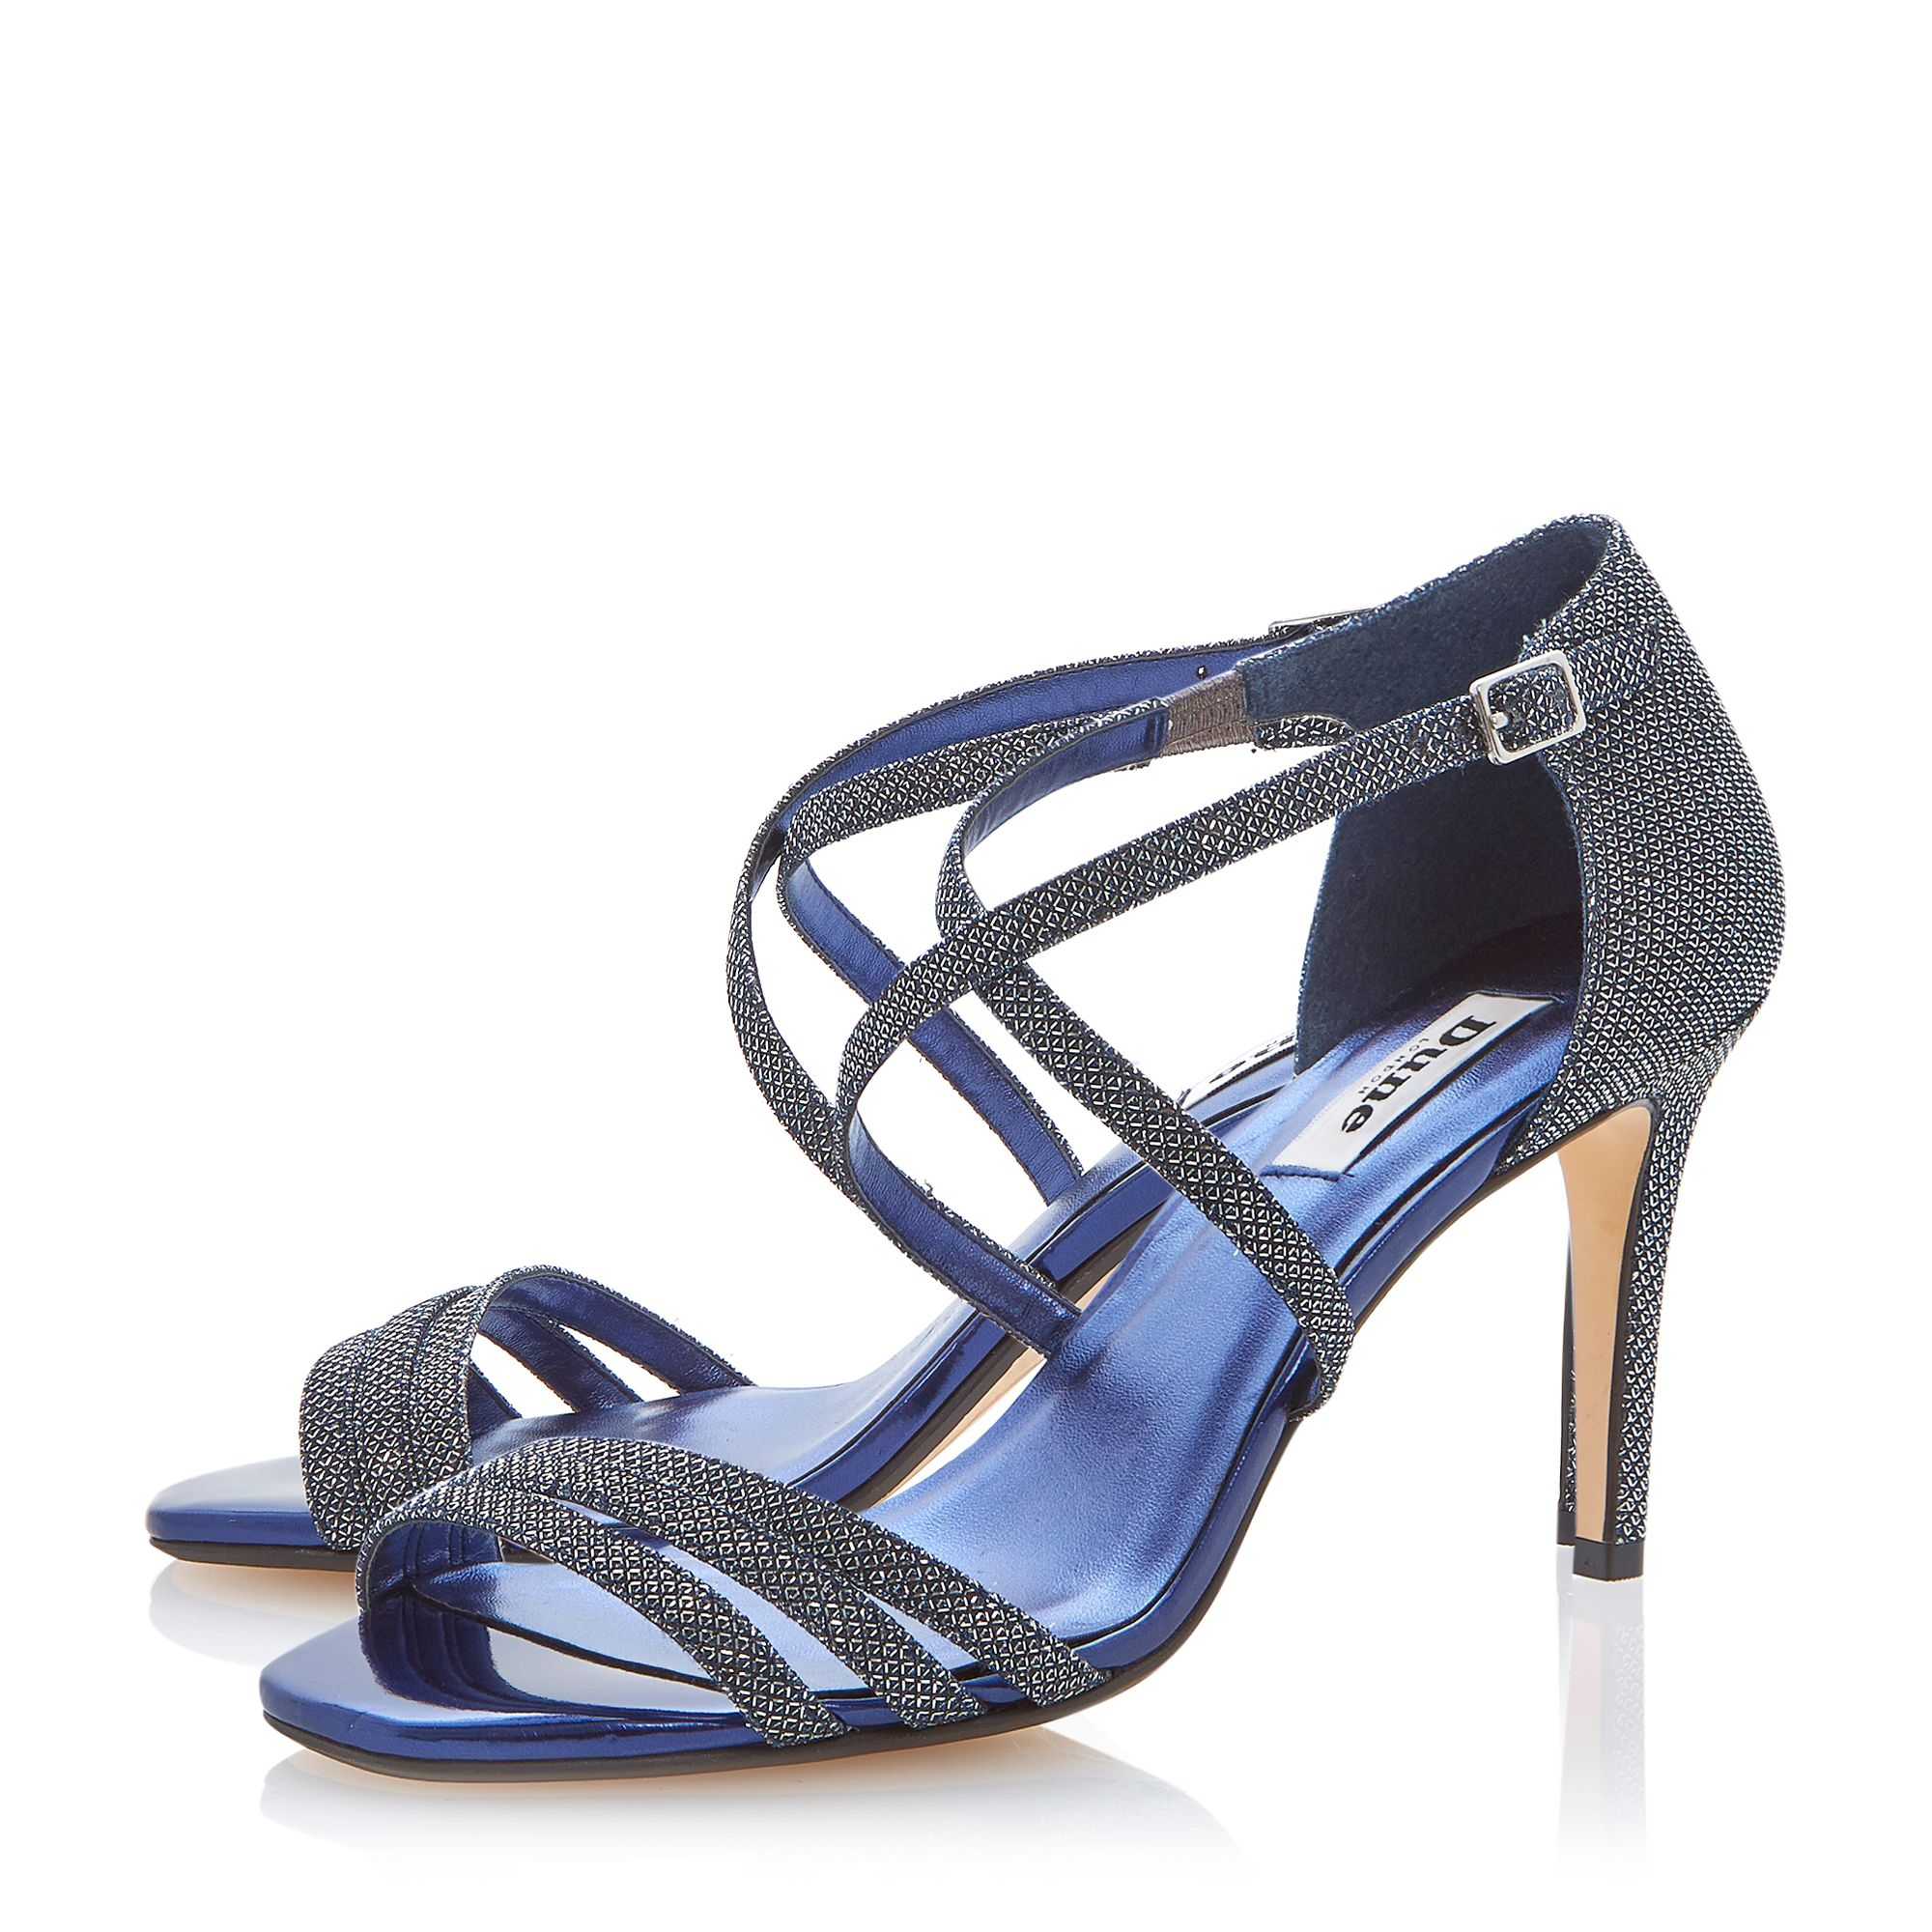 Highlife lurex strappy sandals